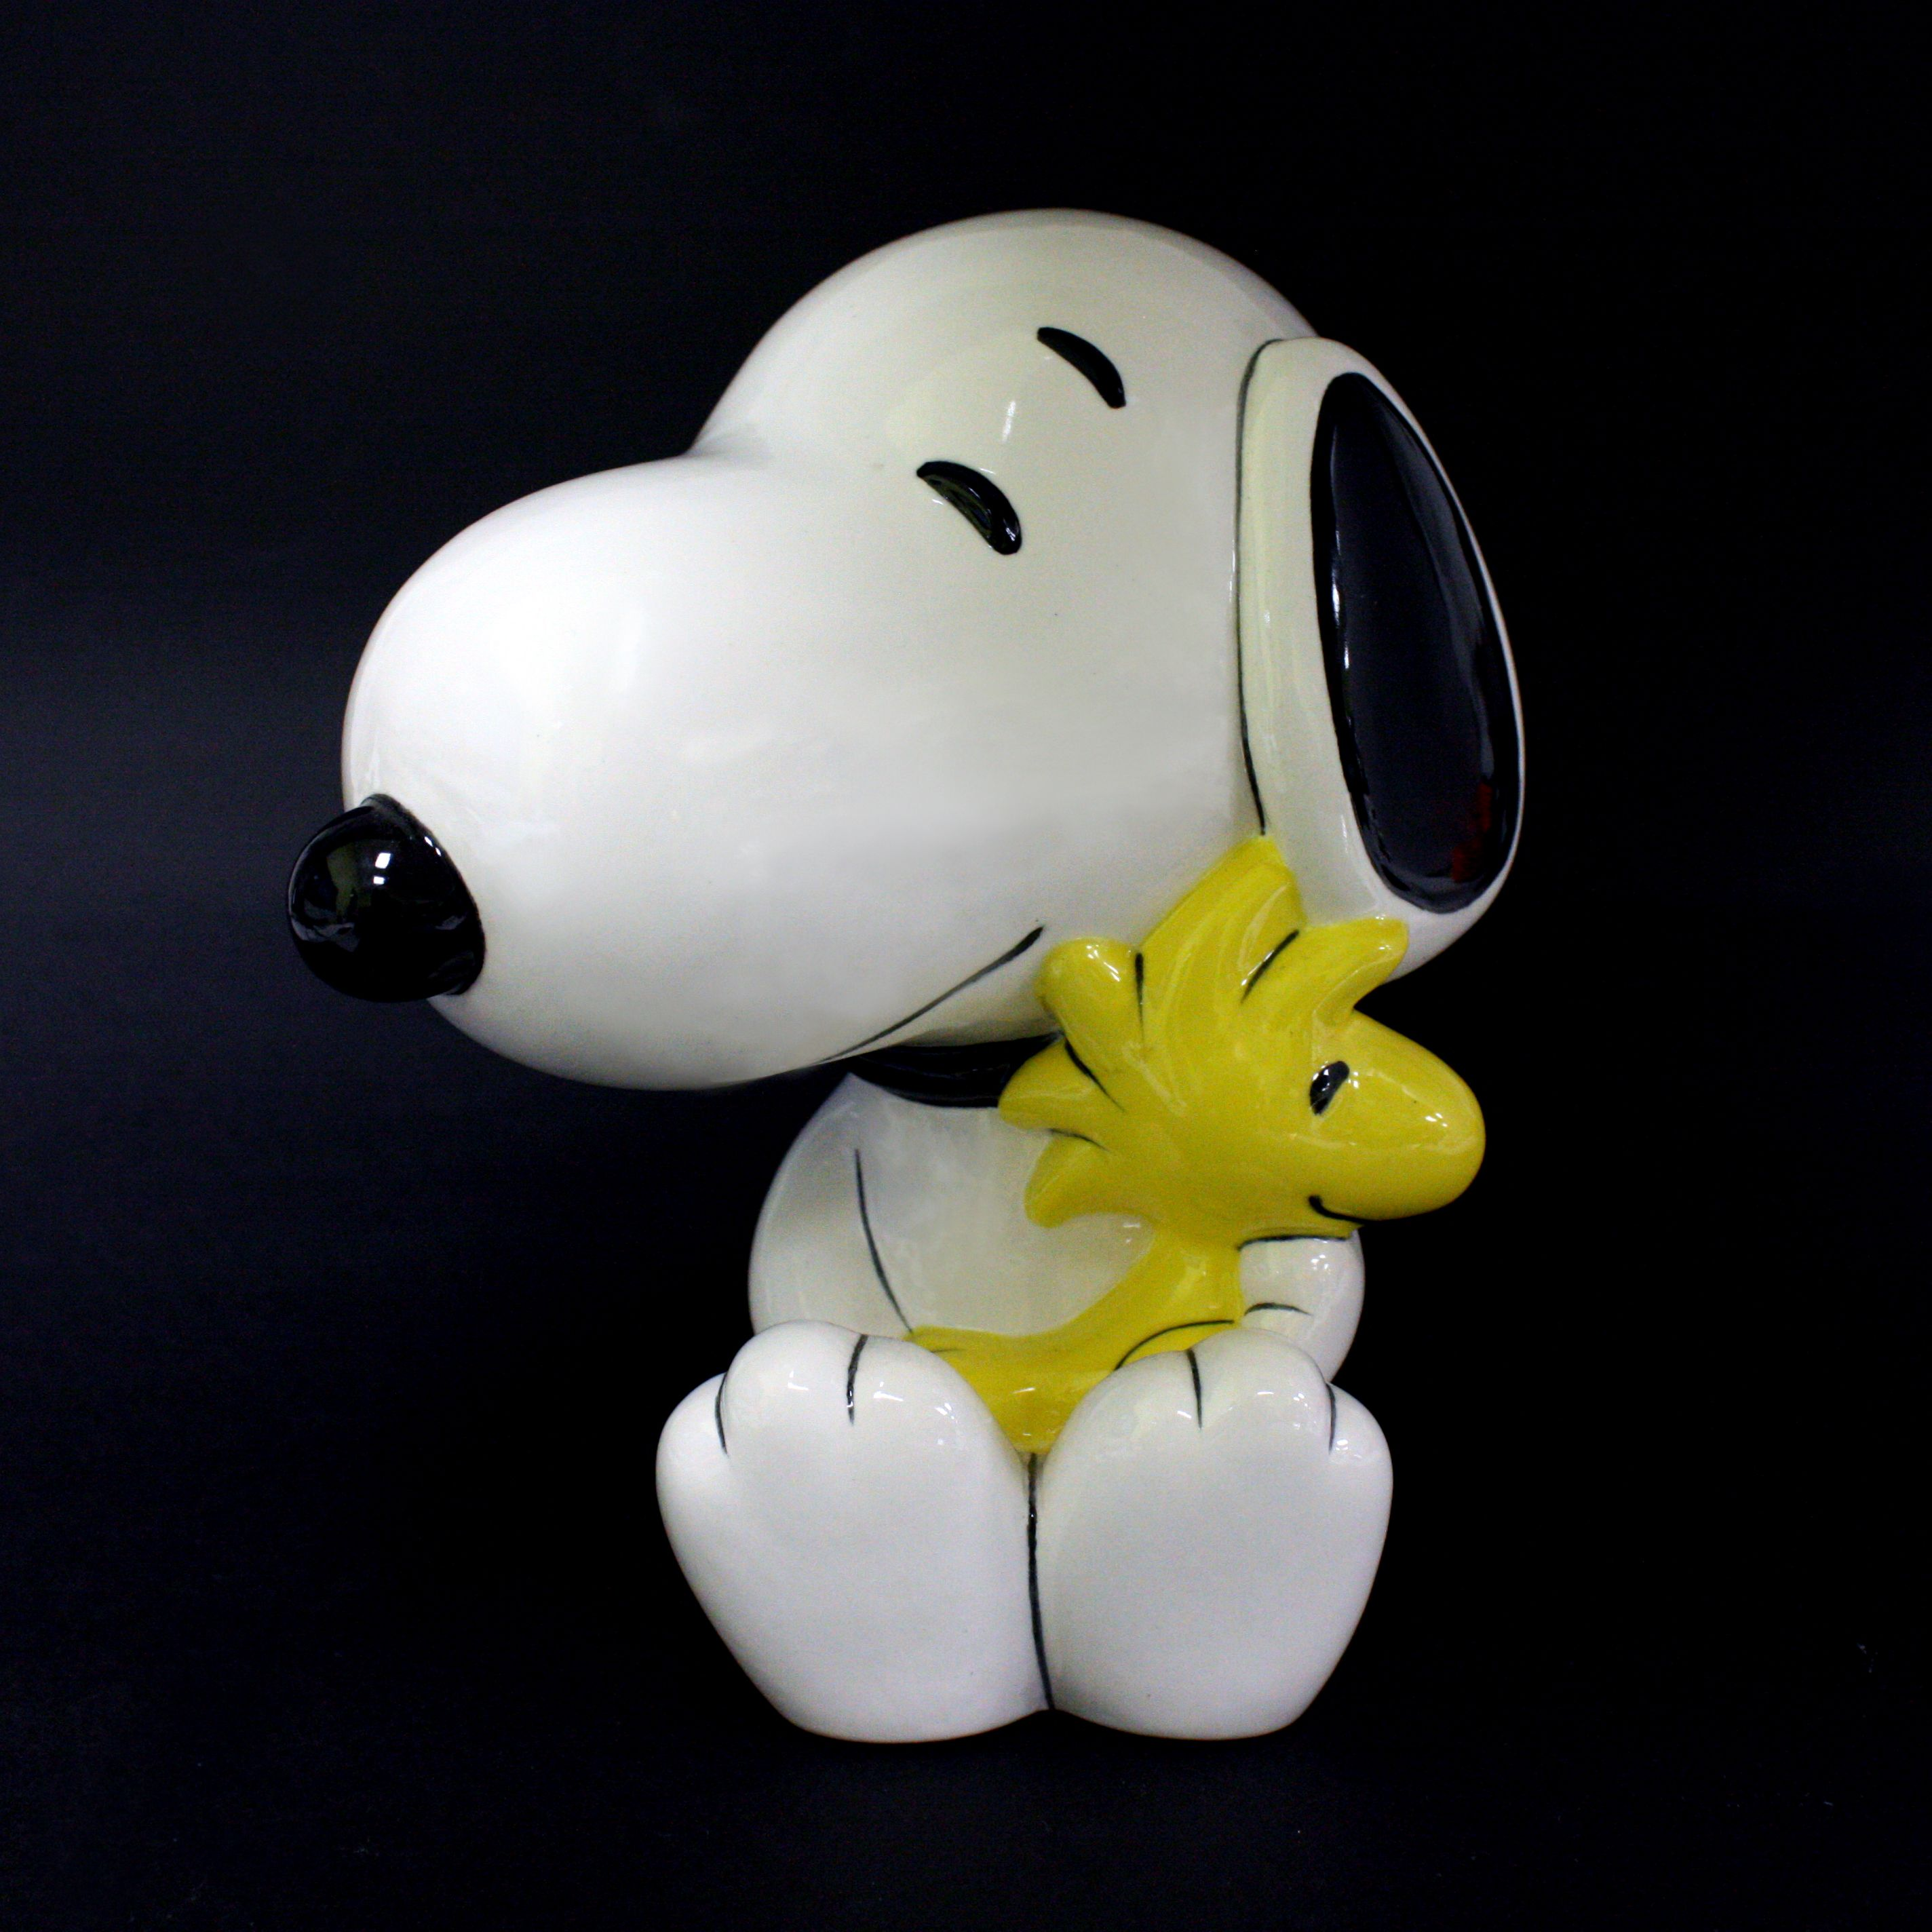 Pnx 001 snoopy woodstock bank chesapeake ceramic bisque ceramic bisque pnx 001 snoopy woodstock bank dailygadgetfo Choice Image